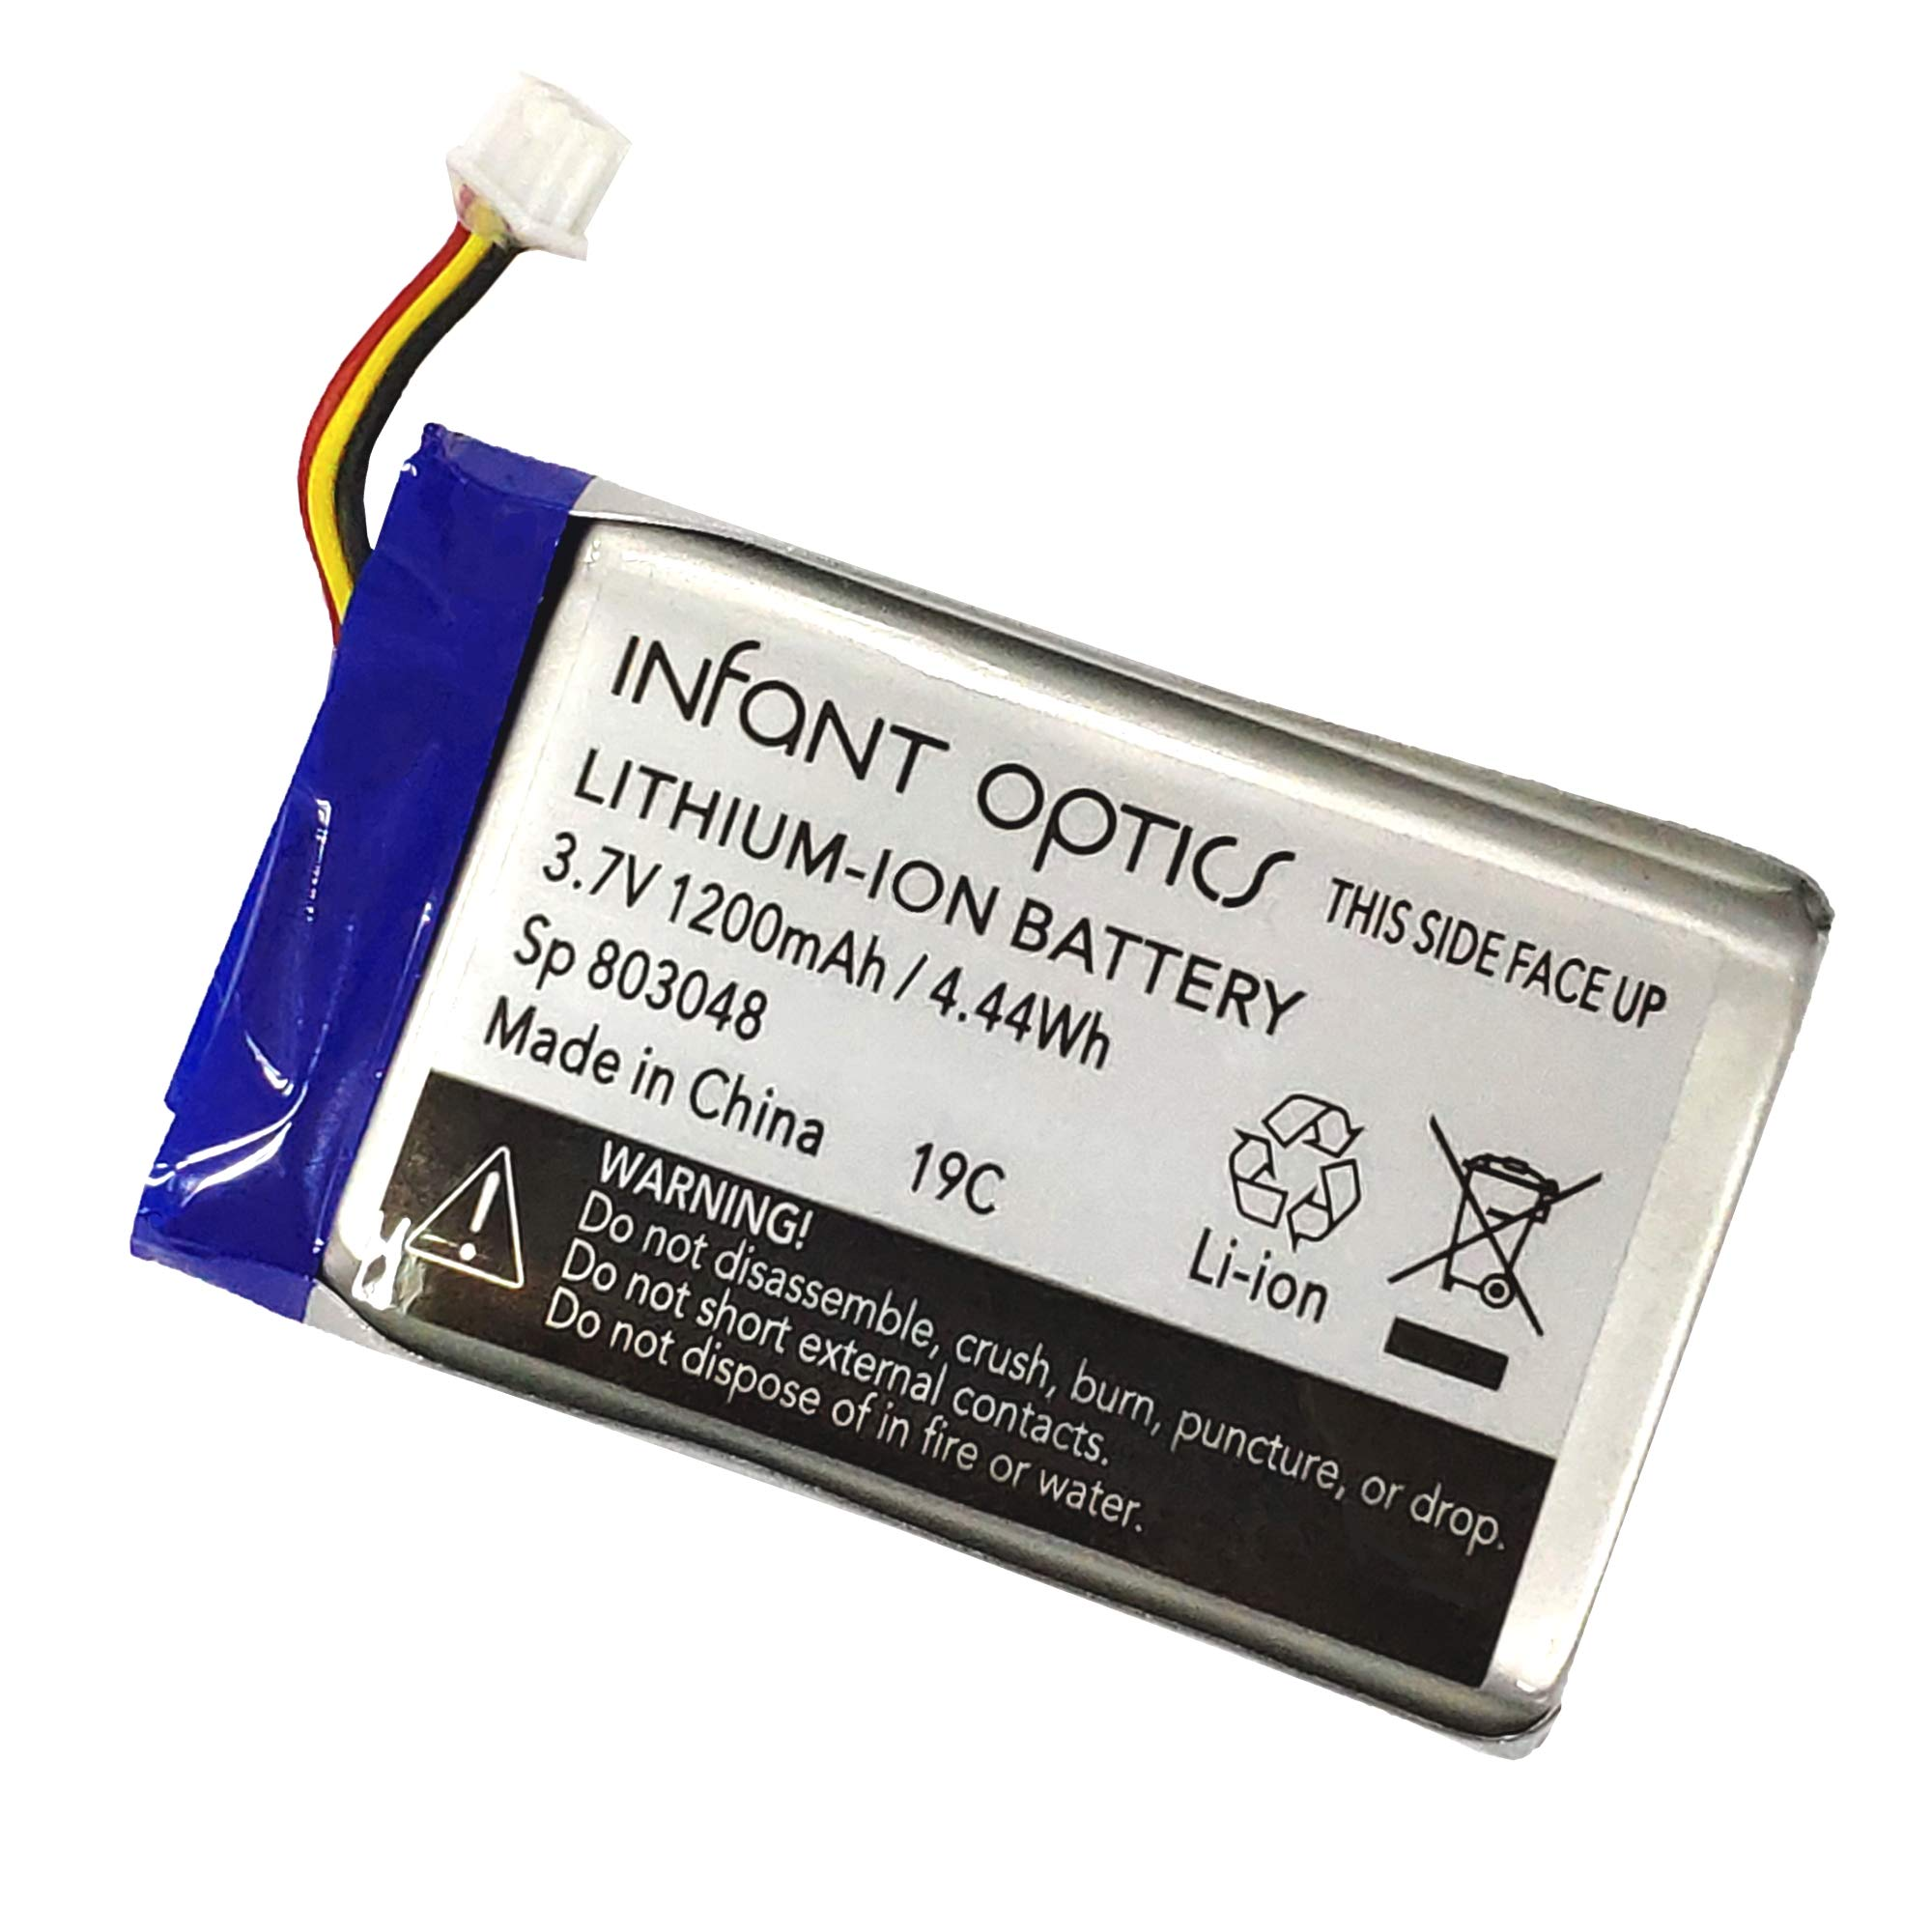 Infant Optics DXR-8 Rechargeable Battery (Infant Optics Official Accessory) (Will NOT Void Warranty)